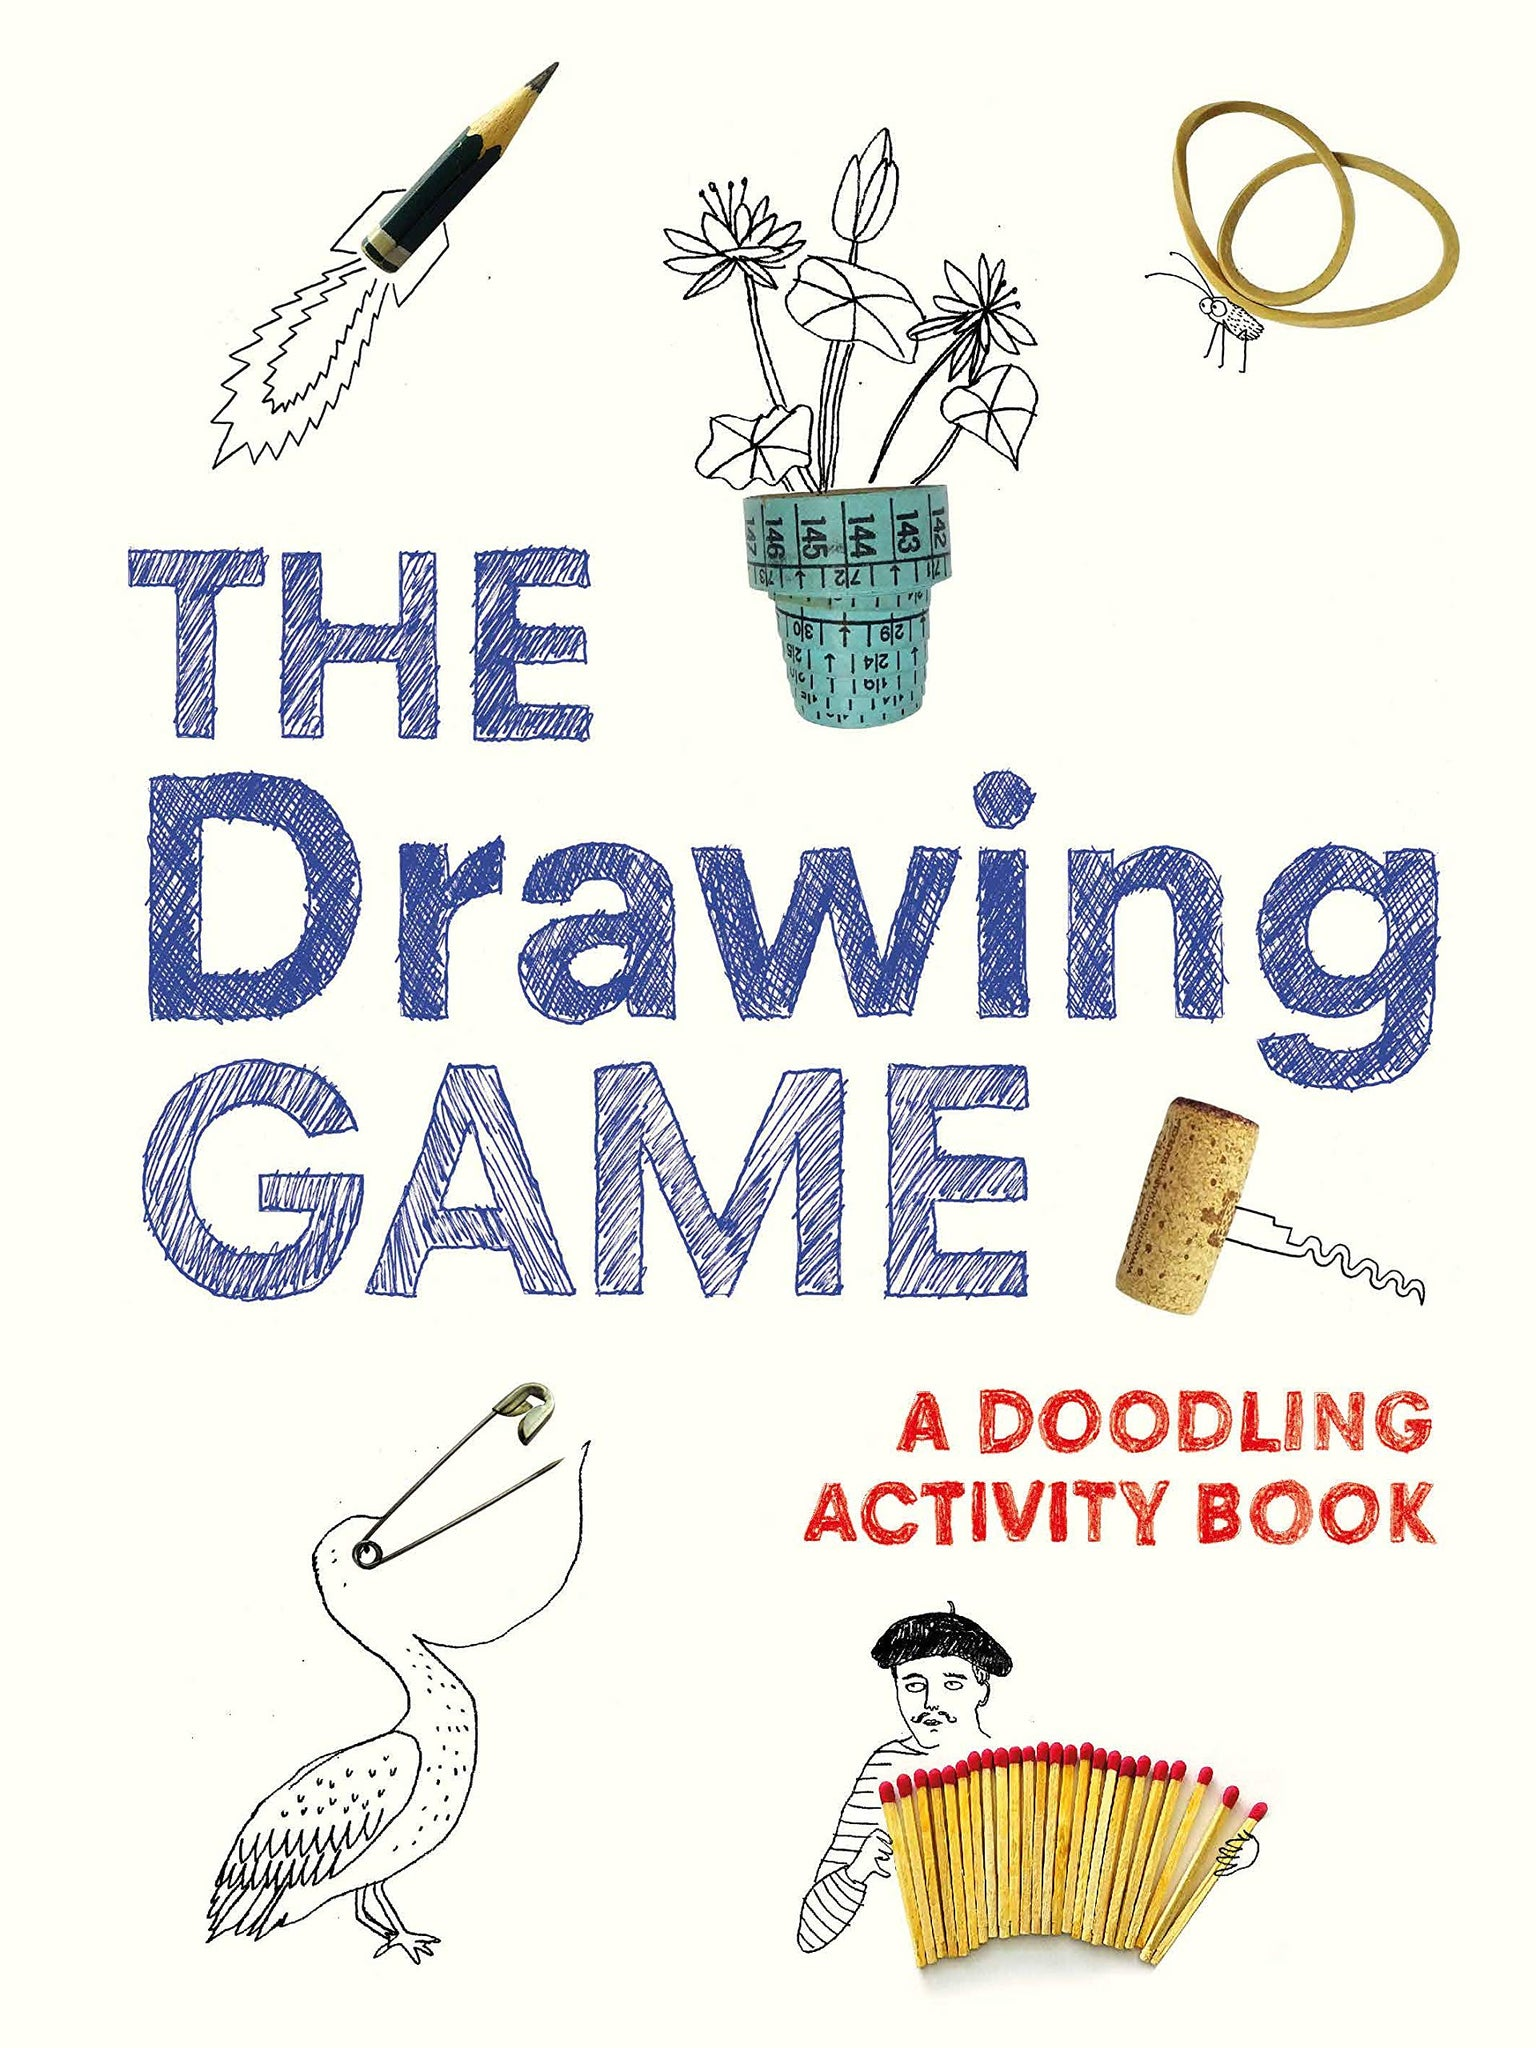 Drawing Game: A Doodling Activity Book